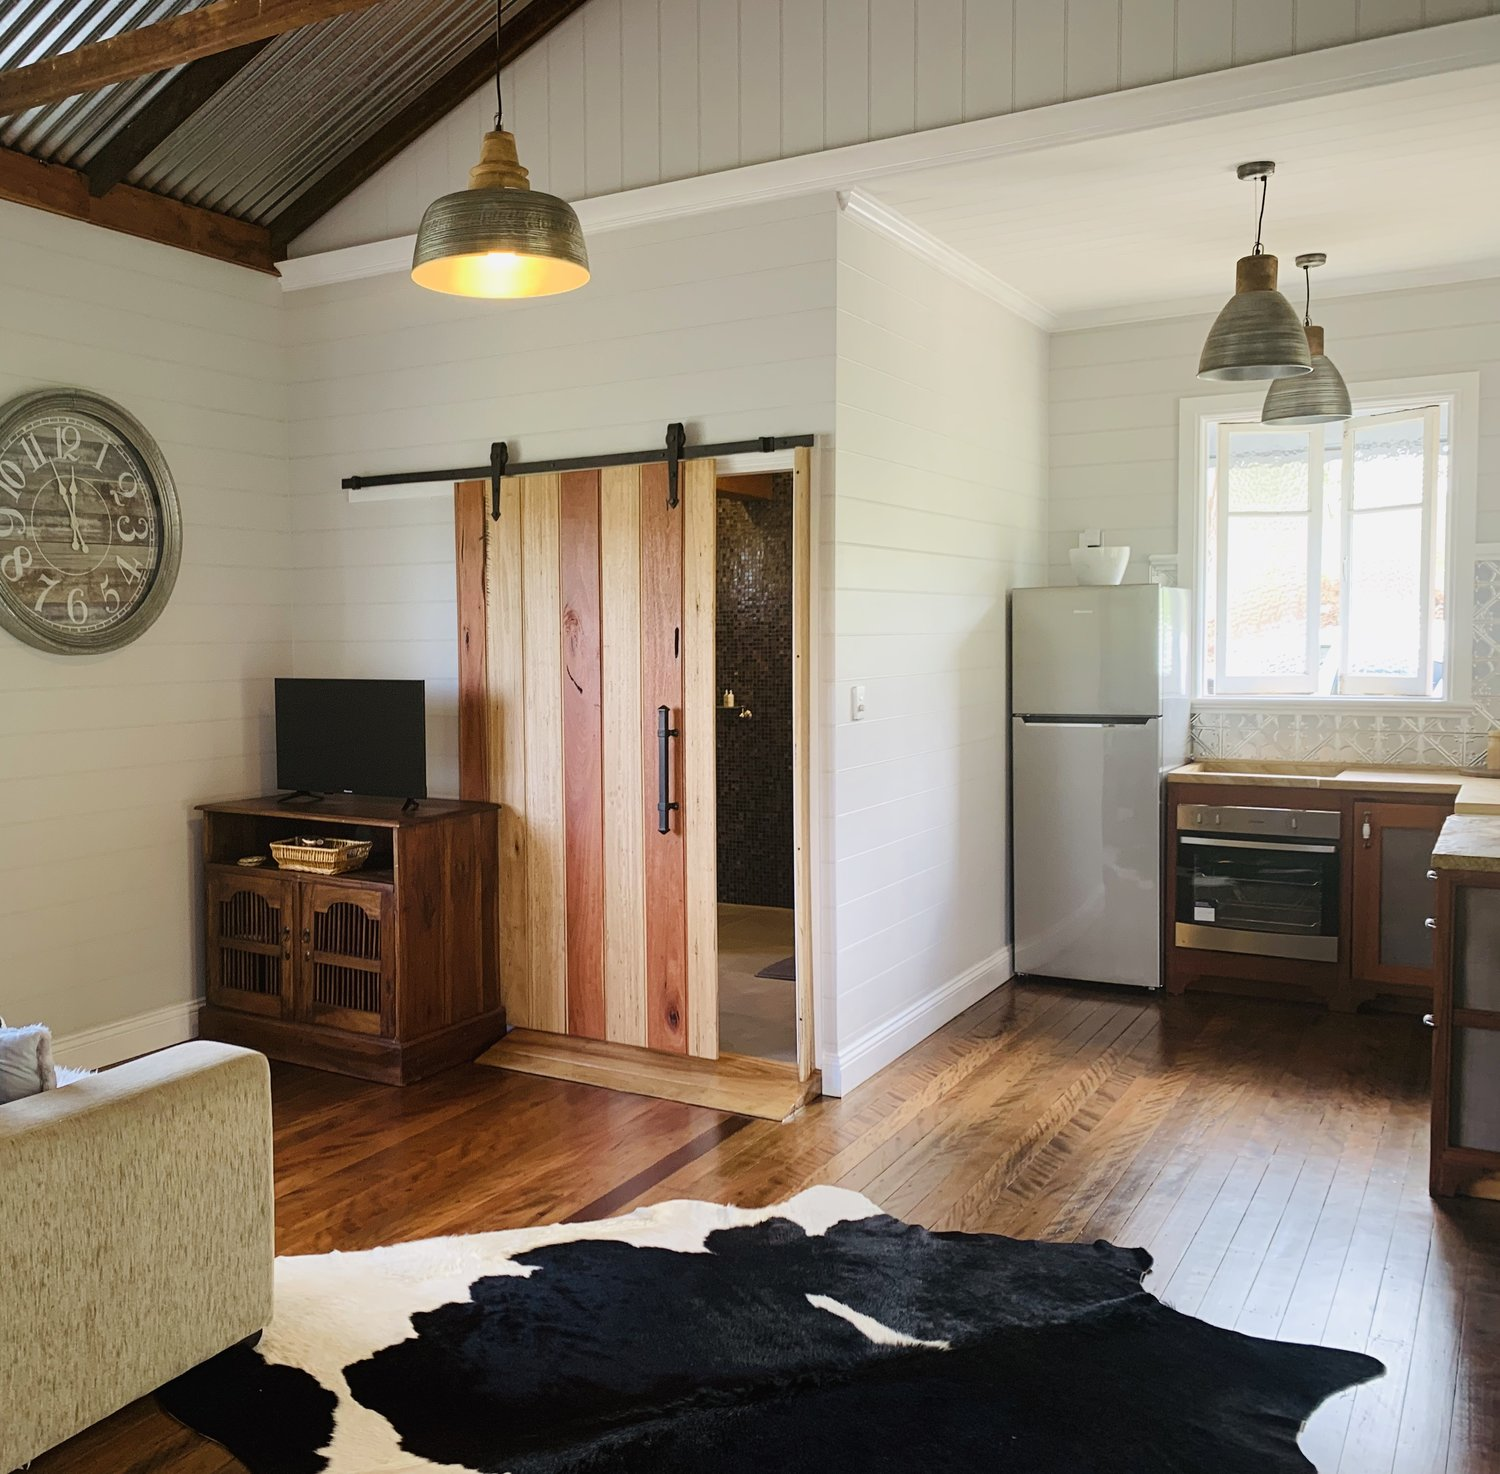 Hand crafted door in native timbers. Kitchen. Wide door. Low bench. Cow skin rug. The Grain Shed Retreat is designed for disability access. Owned and operated by NDIS service provider Darling Downs Wellness Therapies.